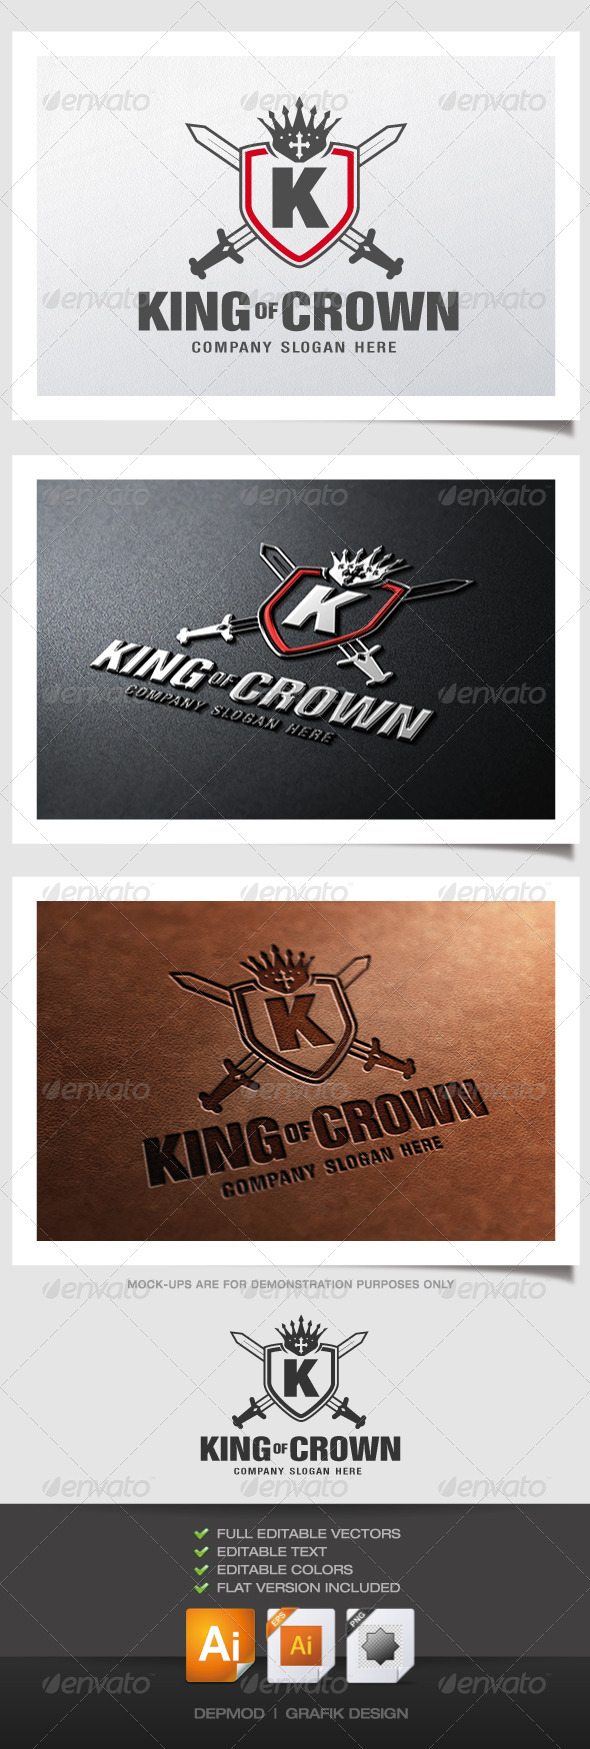 King Of Crown Logo - Crests Logo Templates